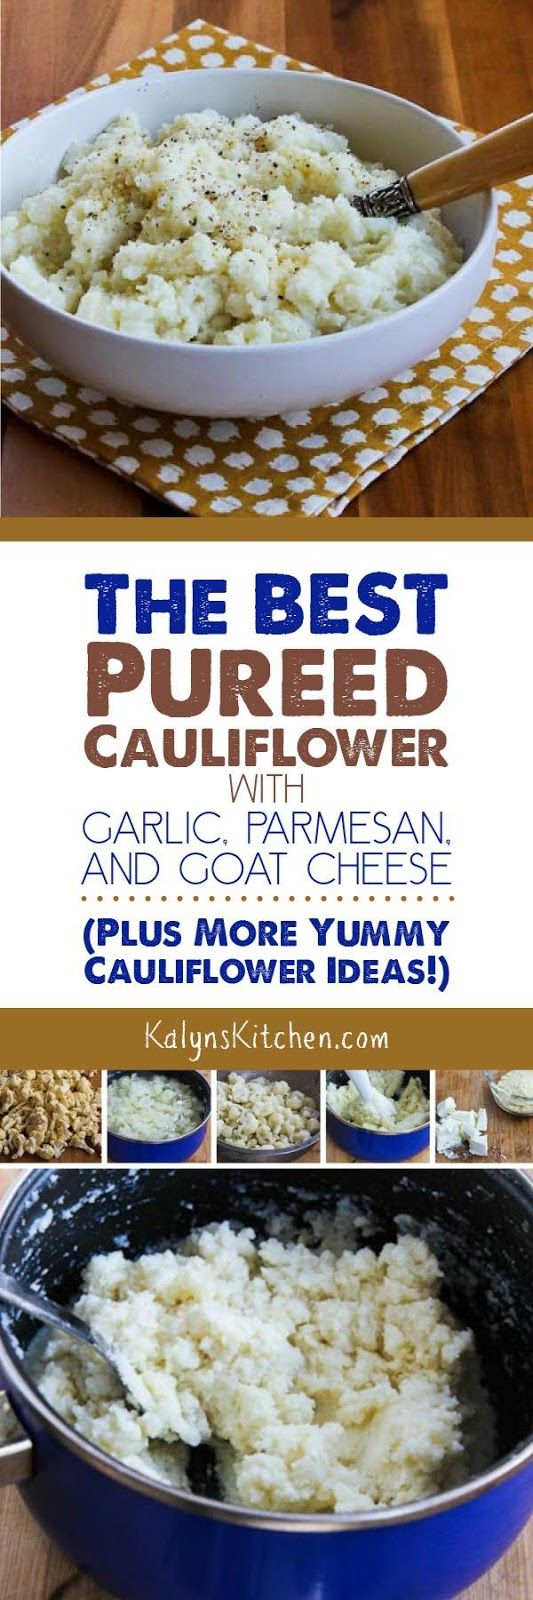 This recipe for The Best Pureed Cauliflower with Garlic, Parmesan, and Goat Cheese is the one I make over and over, plus this post has 10 More Yummy Cauliflower Ideas! Get your cauliflower love going with these great ideas. And this tasty cauliflower mash is low-carb, Keto, low-glycemic, gluten-free, and South Beach Diet friendly. [found on KalynsKitchen.com]